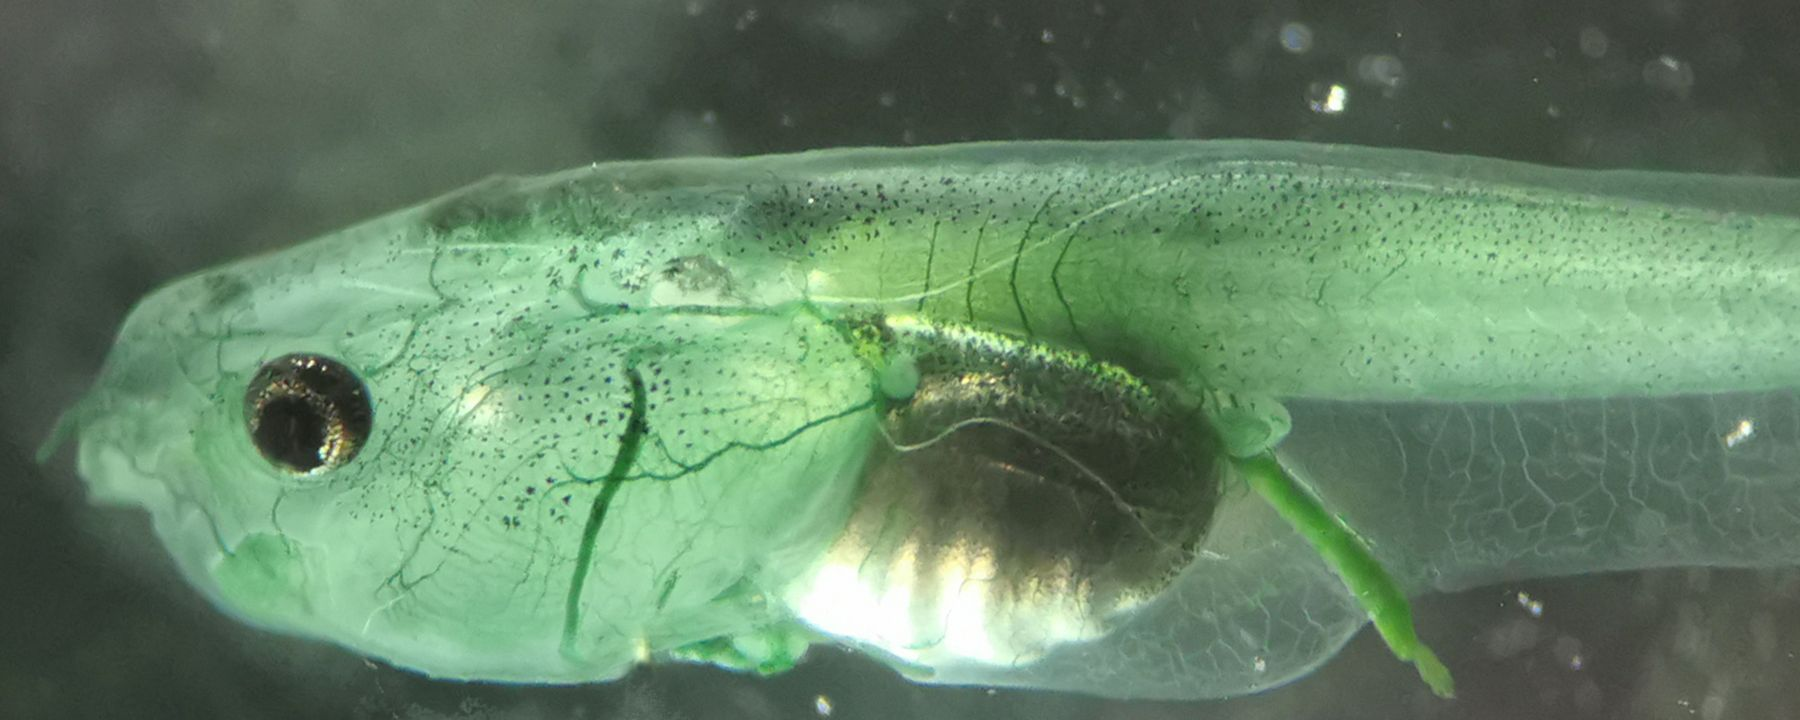 Scientists Use Photosynthesis to Power an Animal's Brain